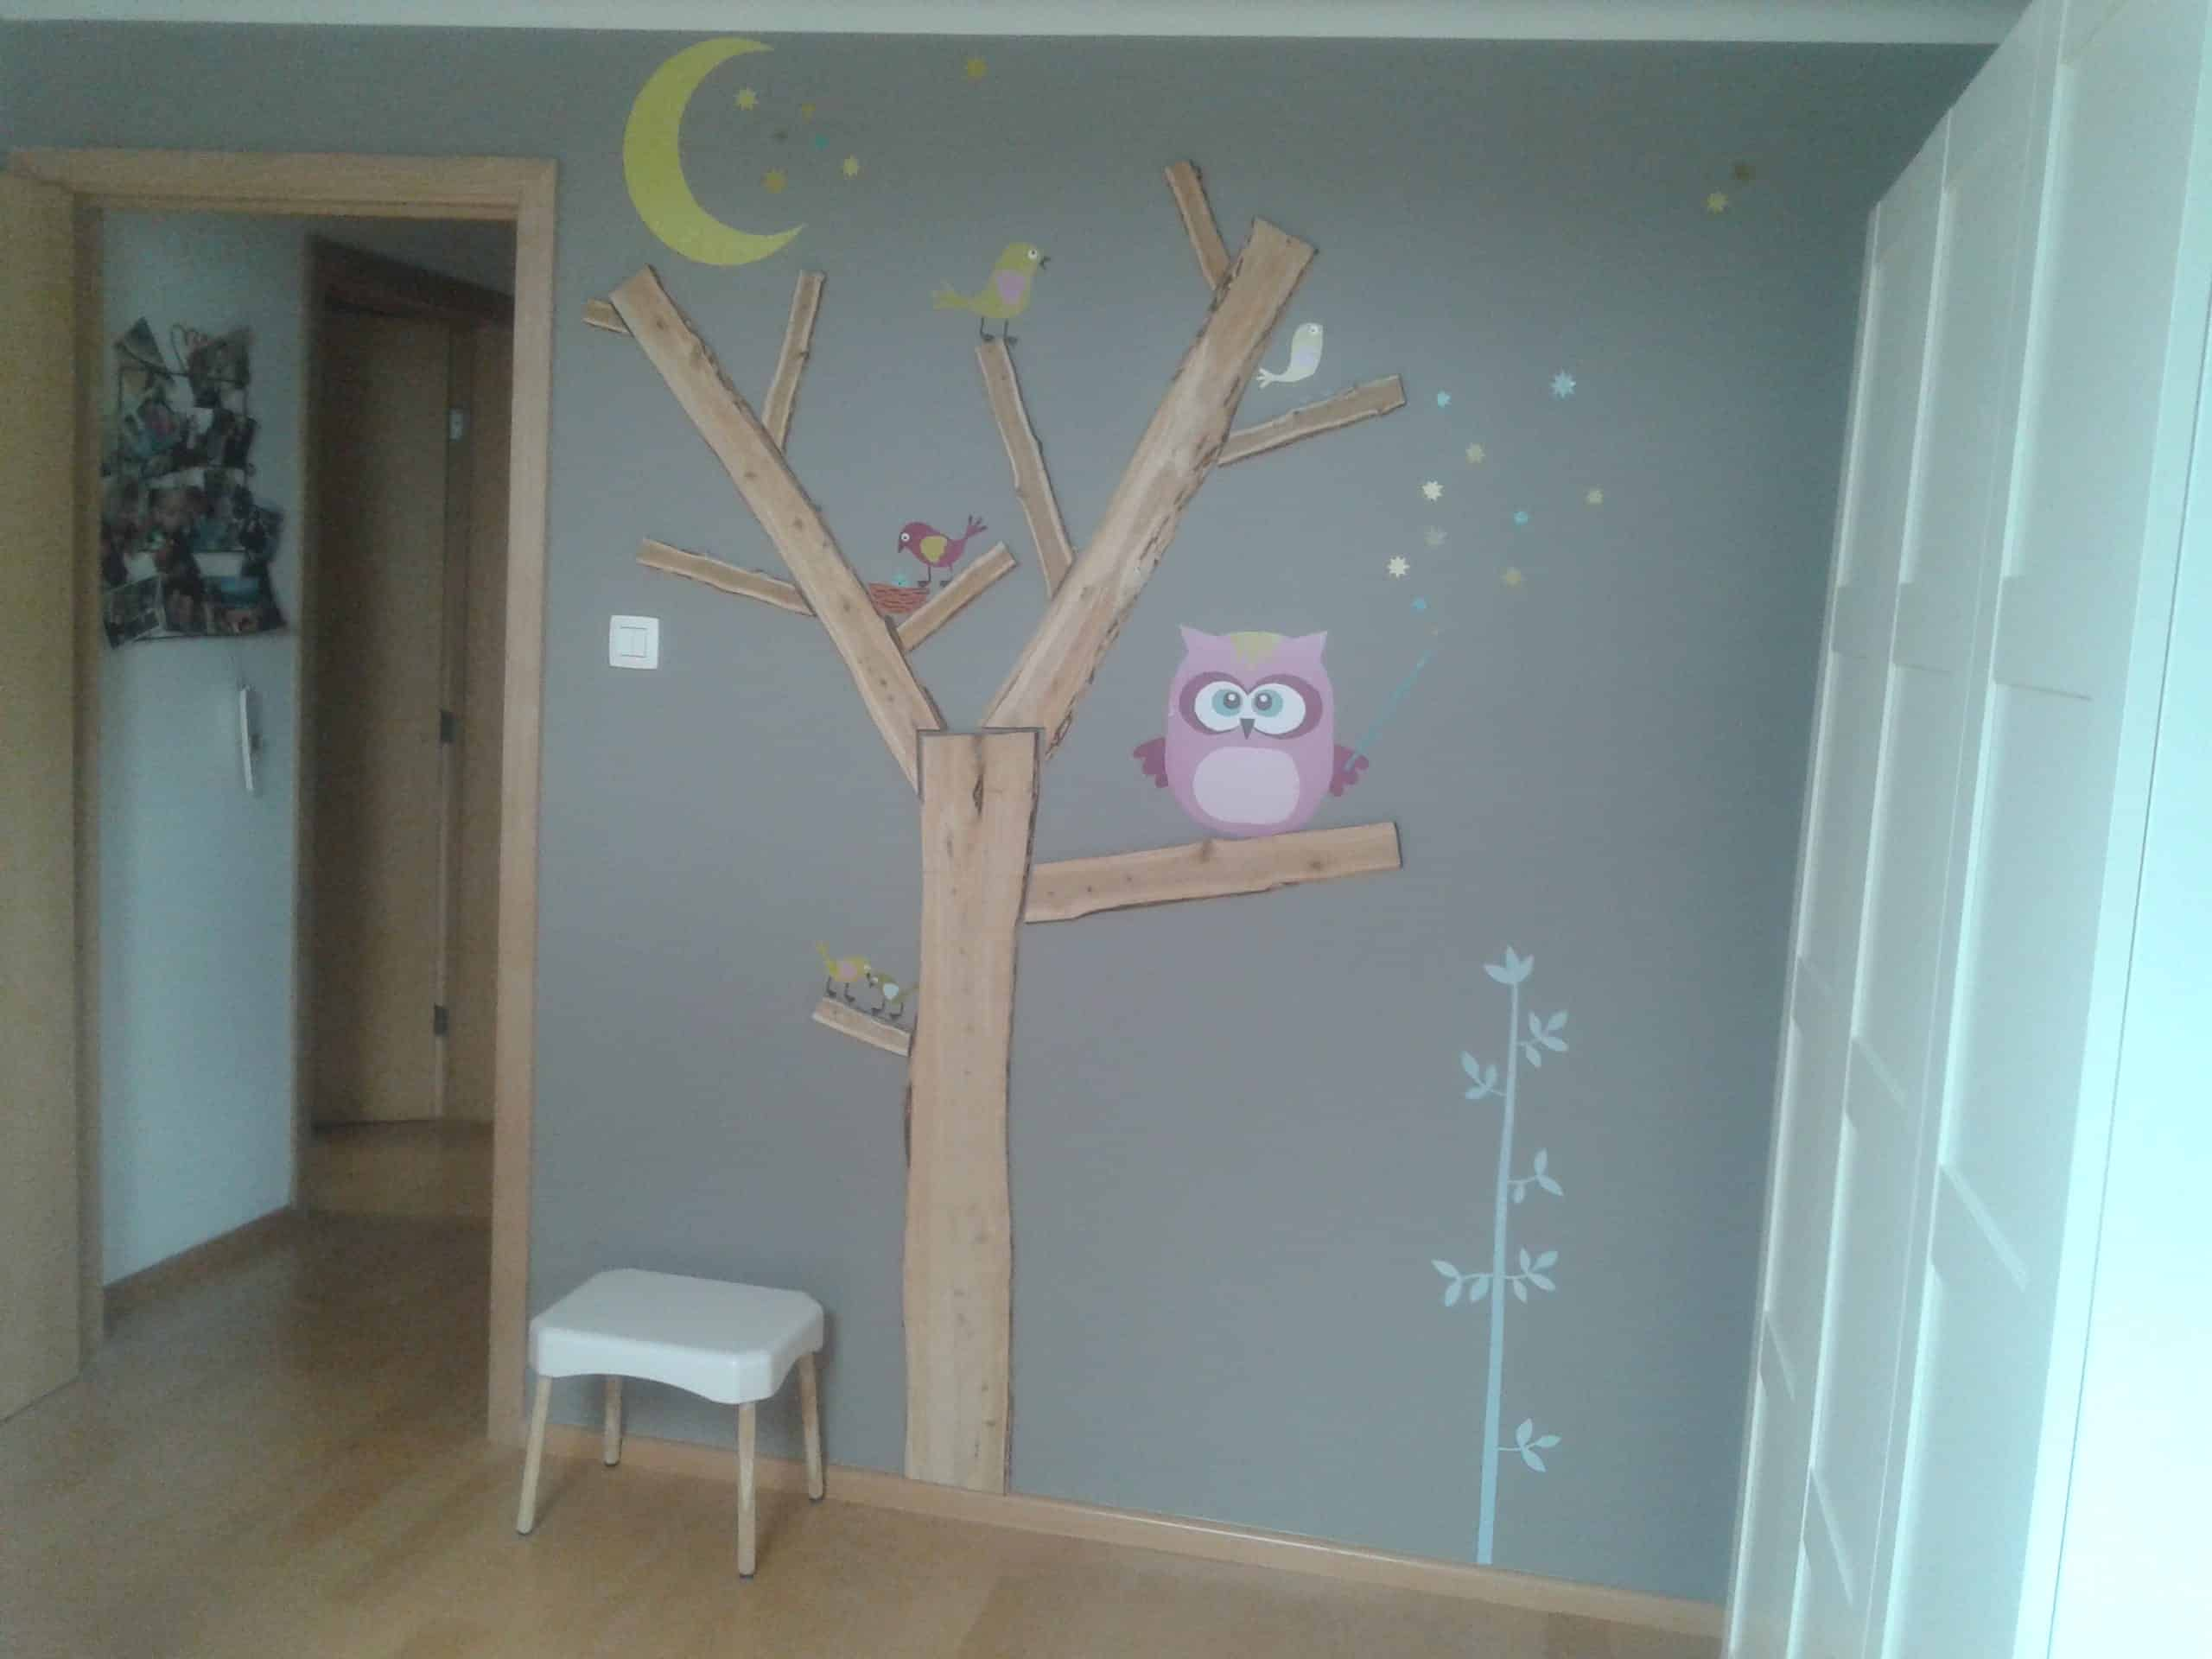 D coration arbre pour chambre b b fille tree wall d cor for my daughter bedroom recyclart for Cadre pour decoration maison